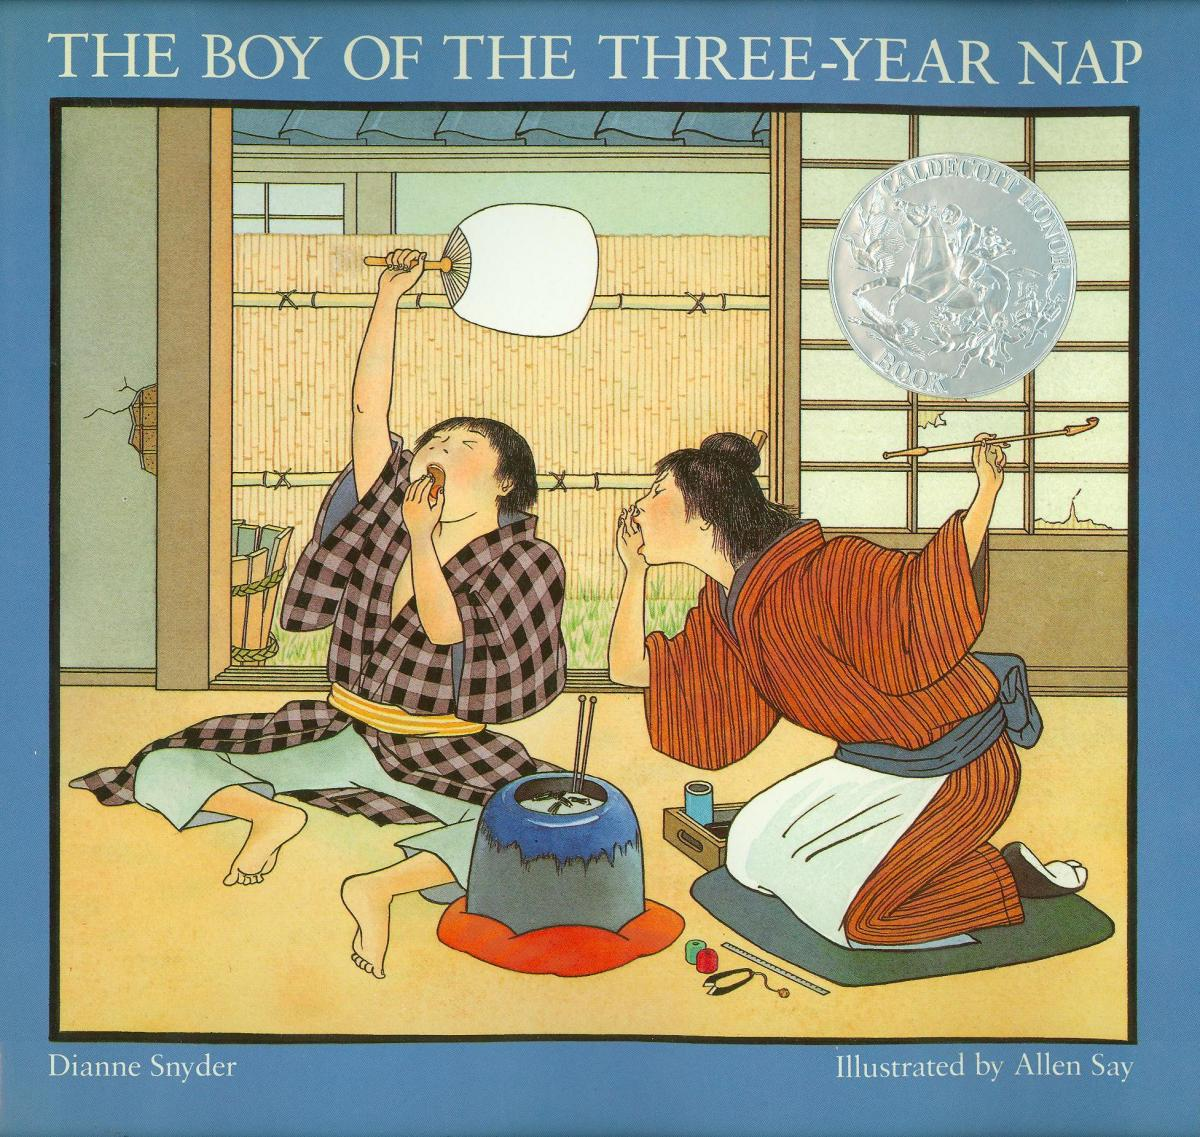 The Boy of the Three-Year Nap - book cover